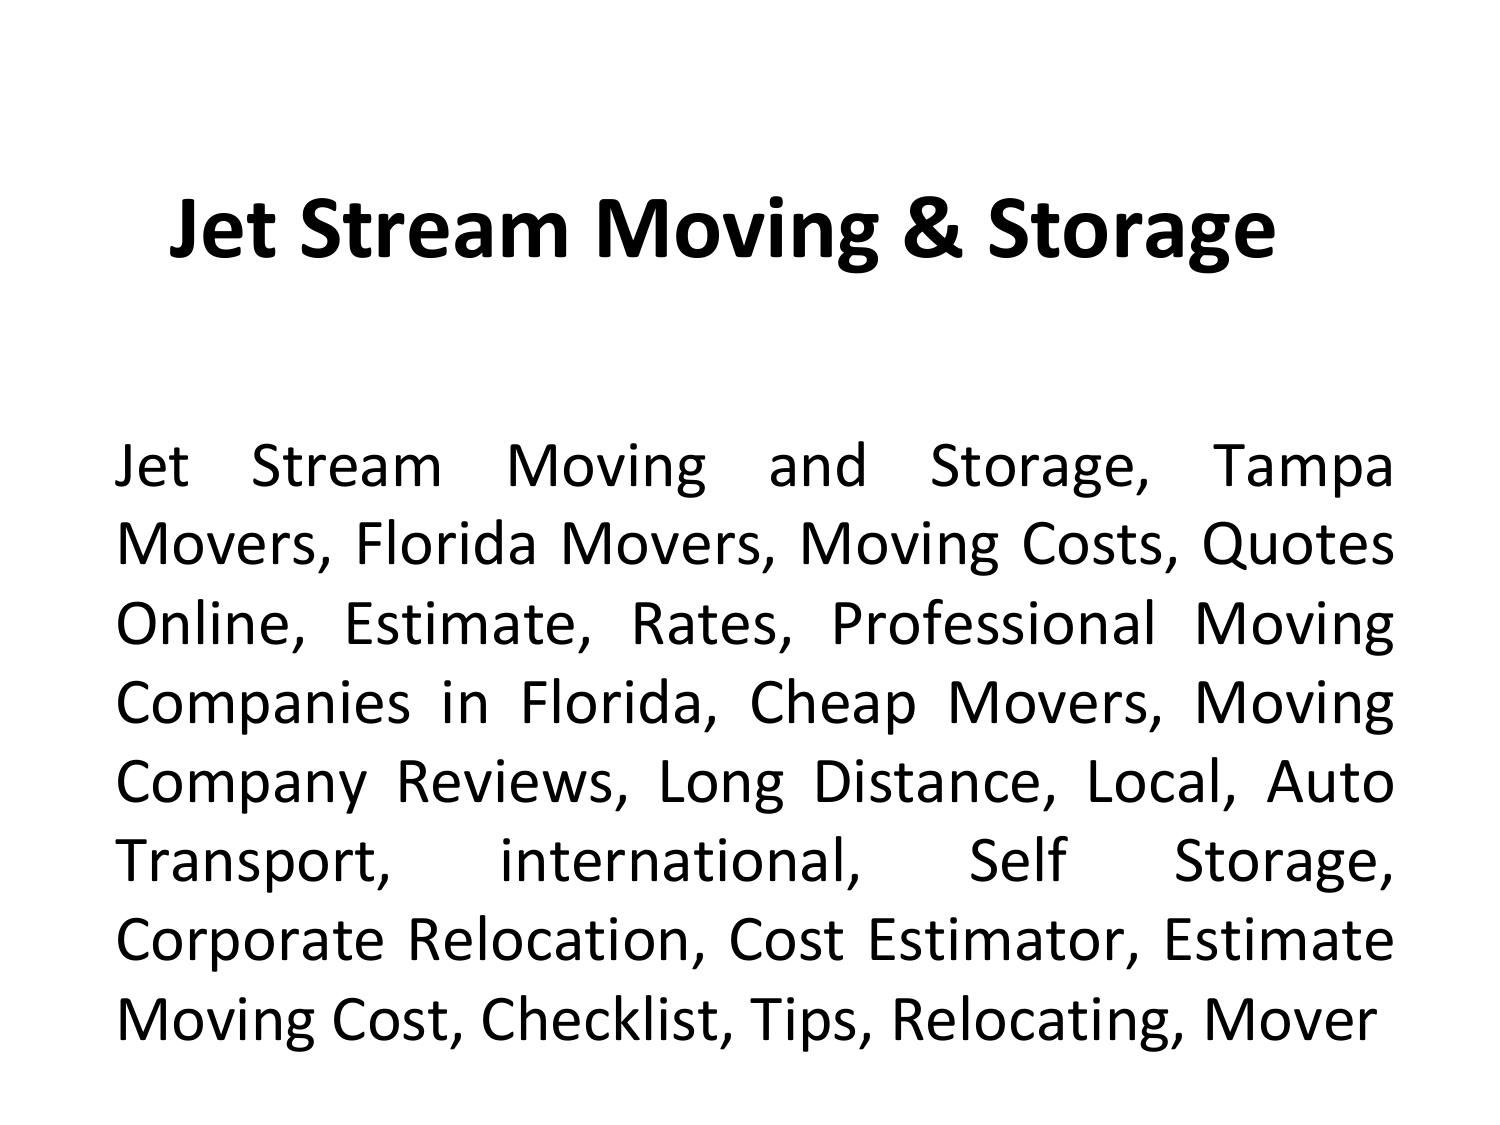 Self Storage Tampa Jet Stream Moving Storage Jet Stream Moving Cheap Movers